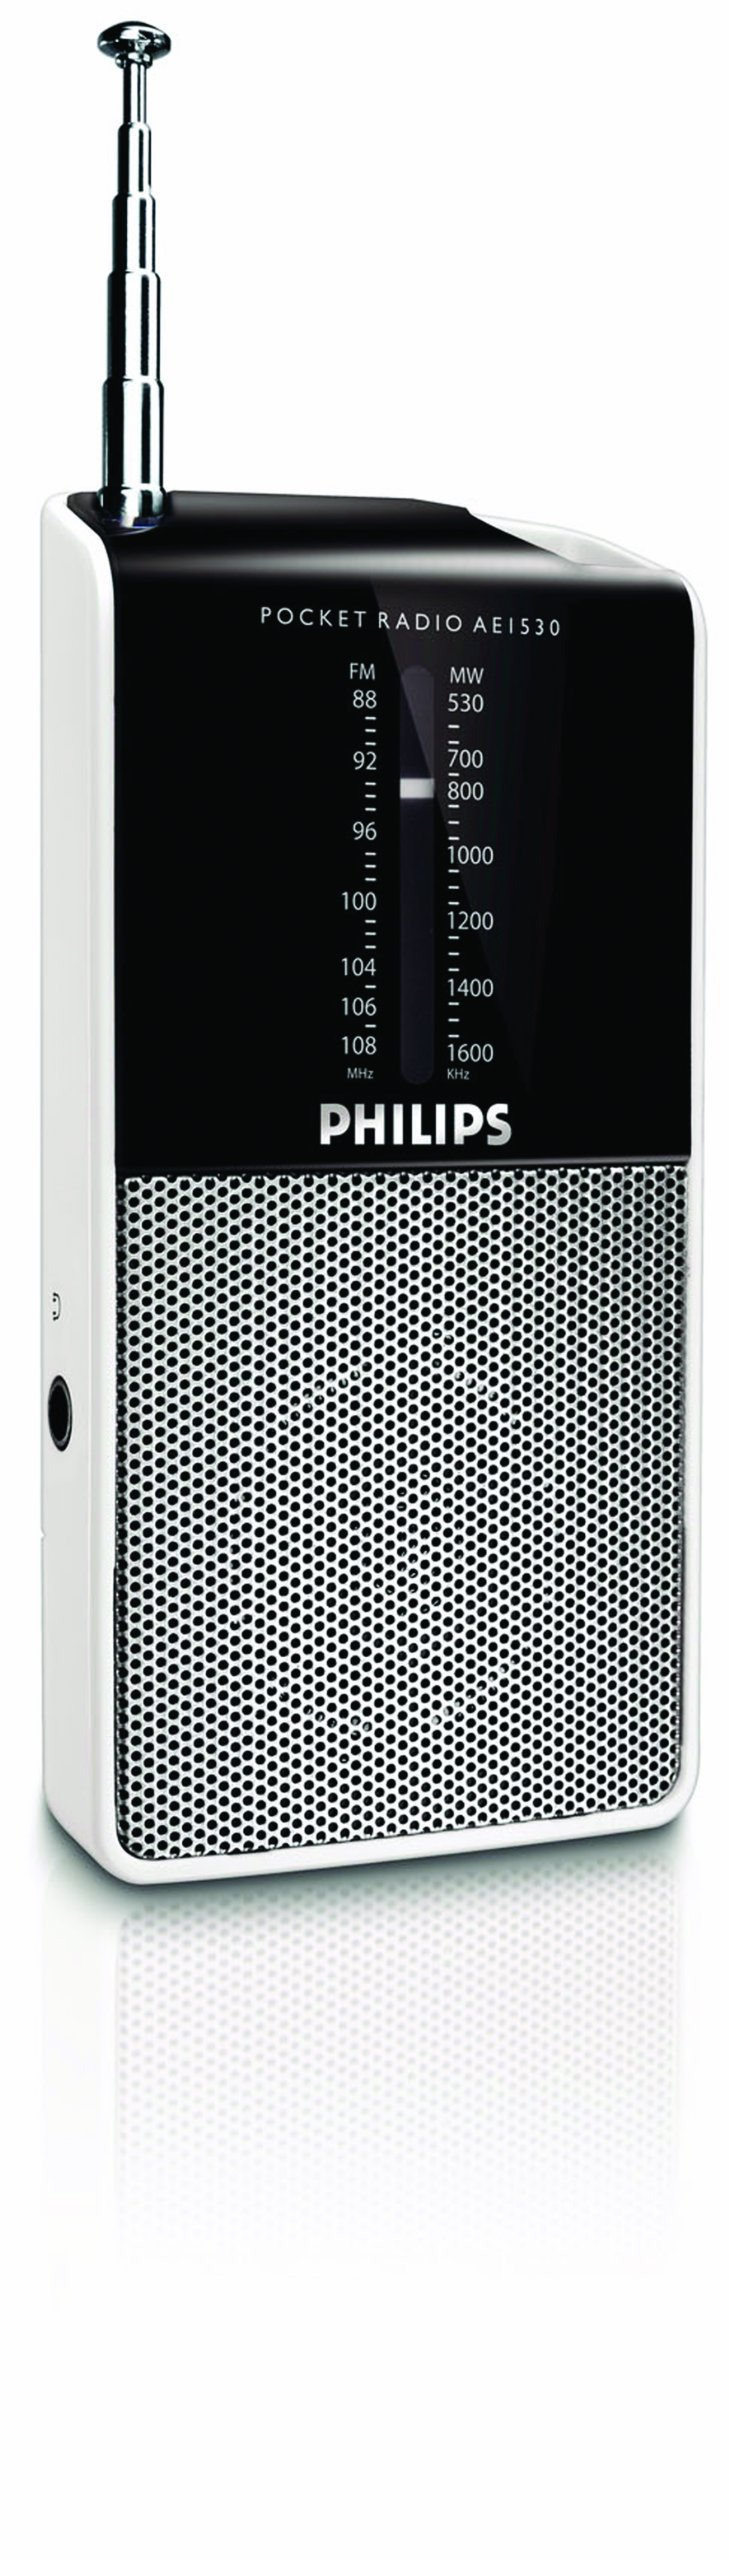 Philips Audio AE1530 Portable Radio with analog UKW/MW-Tuner (Headphone Jack, Battery Operating,Built-In Speaker) - silver/black